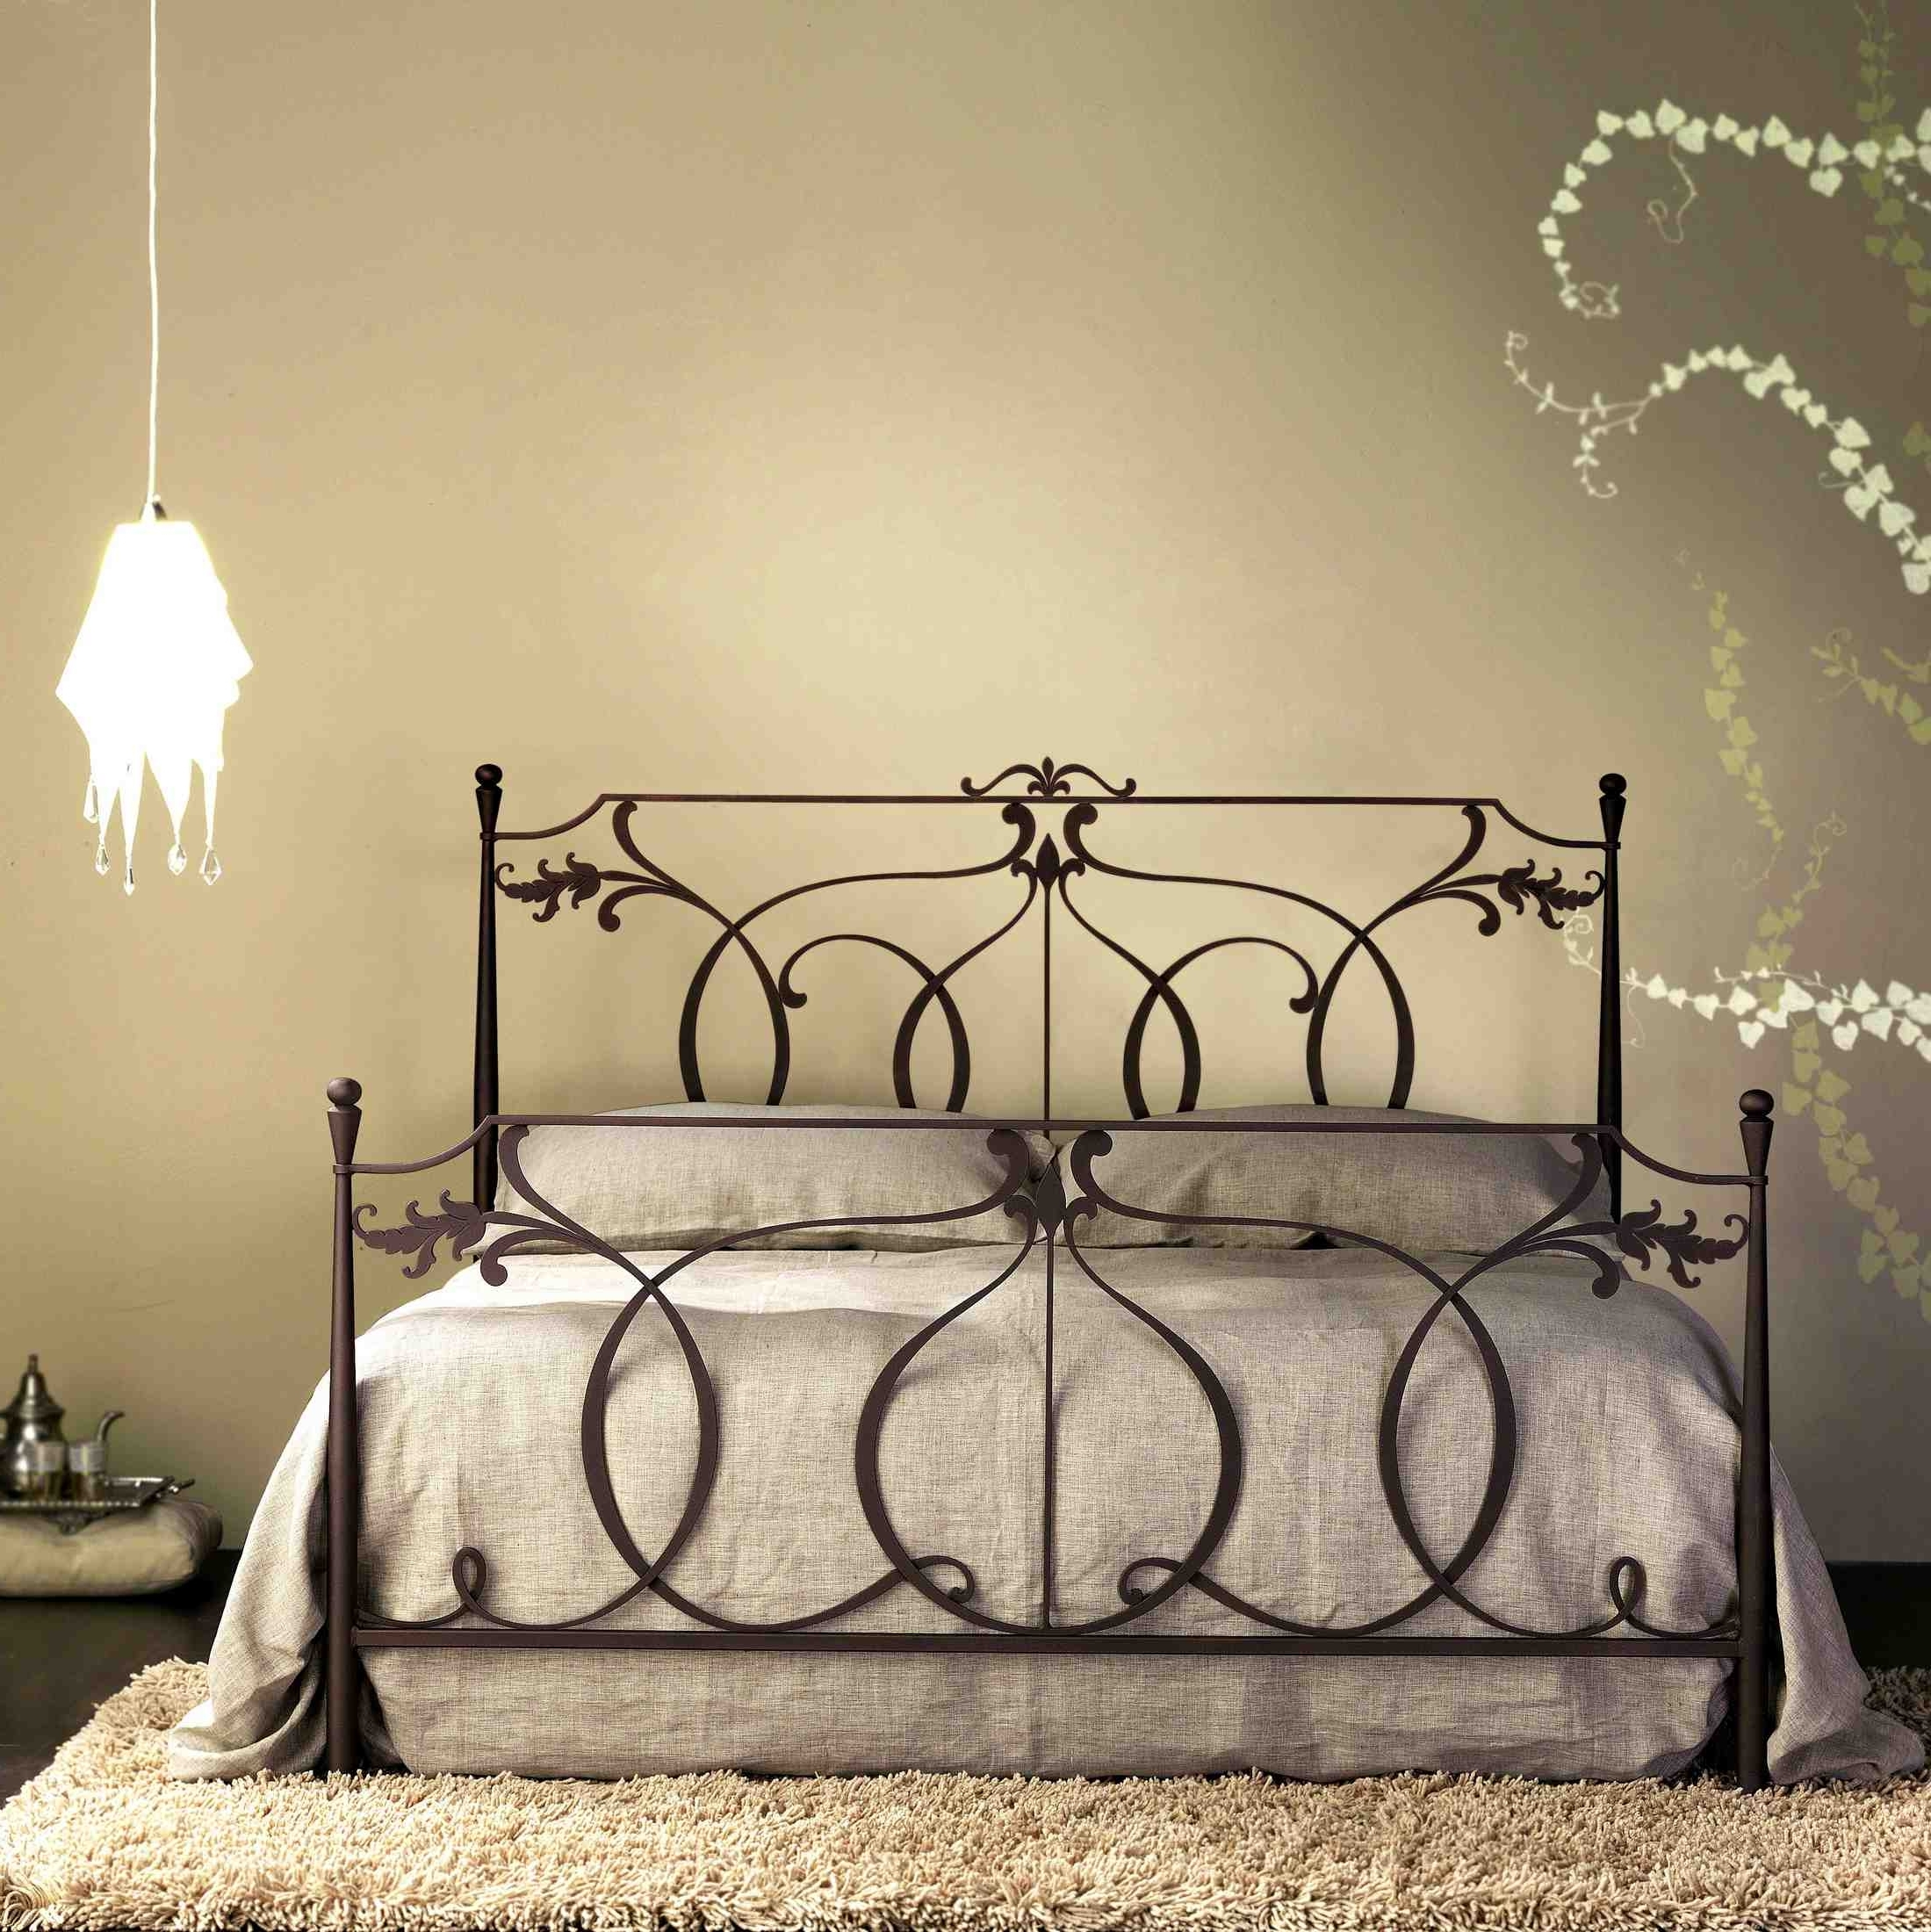 Black And White Italian Wall Art In Widely Used Bedroom : White Metal Wall Art Outdoor Metal Wall Art Kitchen (View 4 of 15)